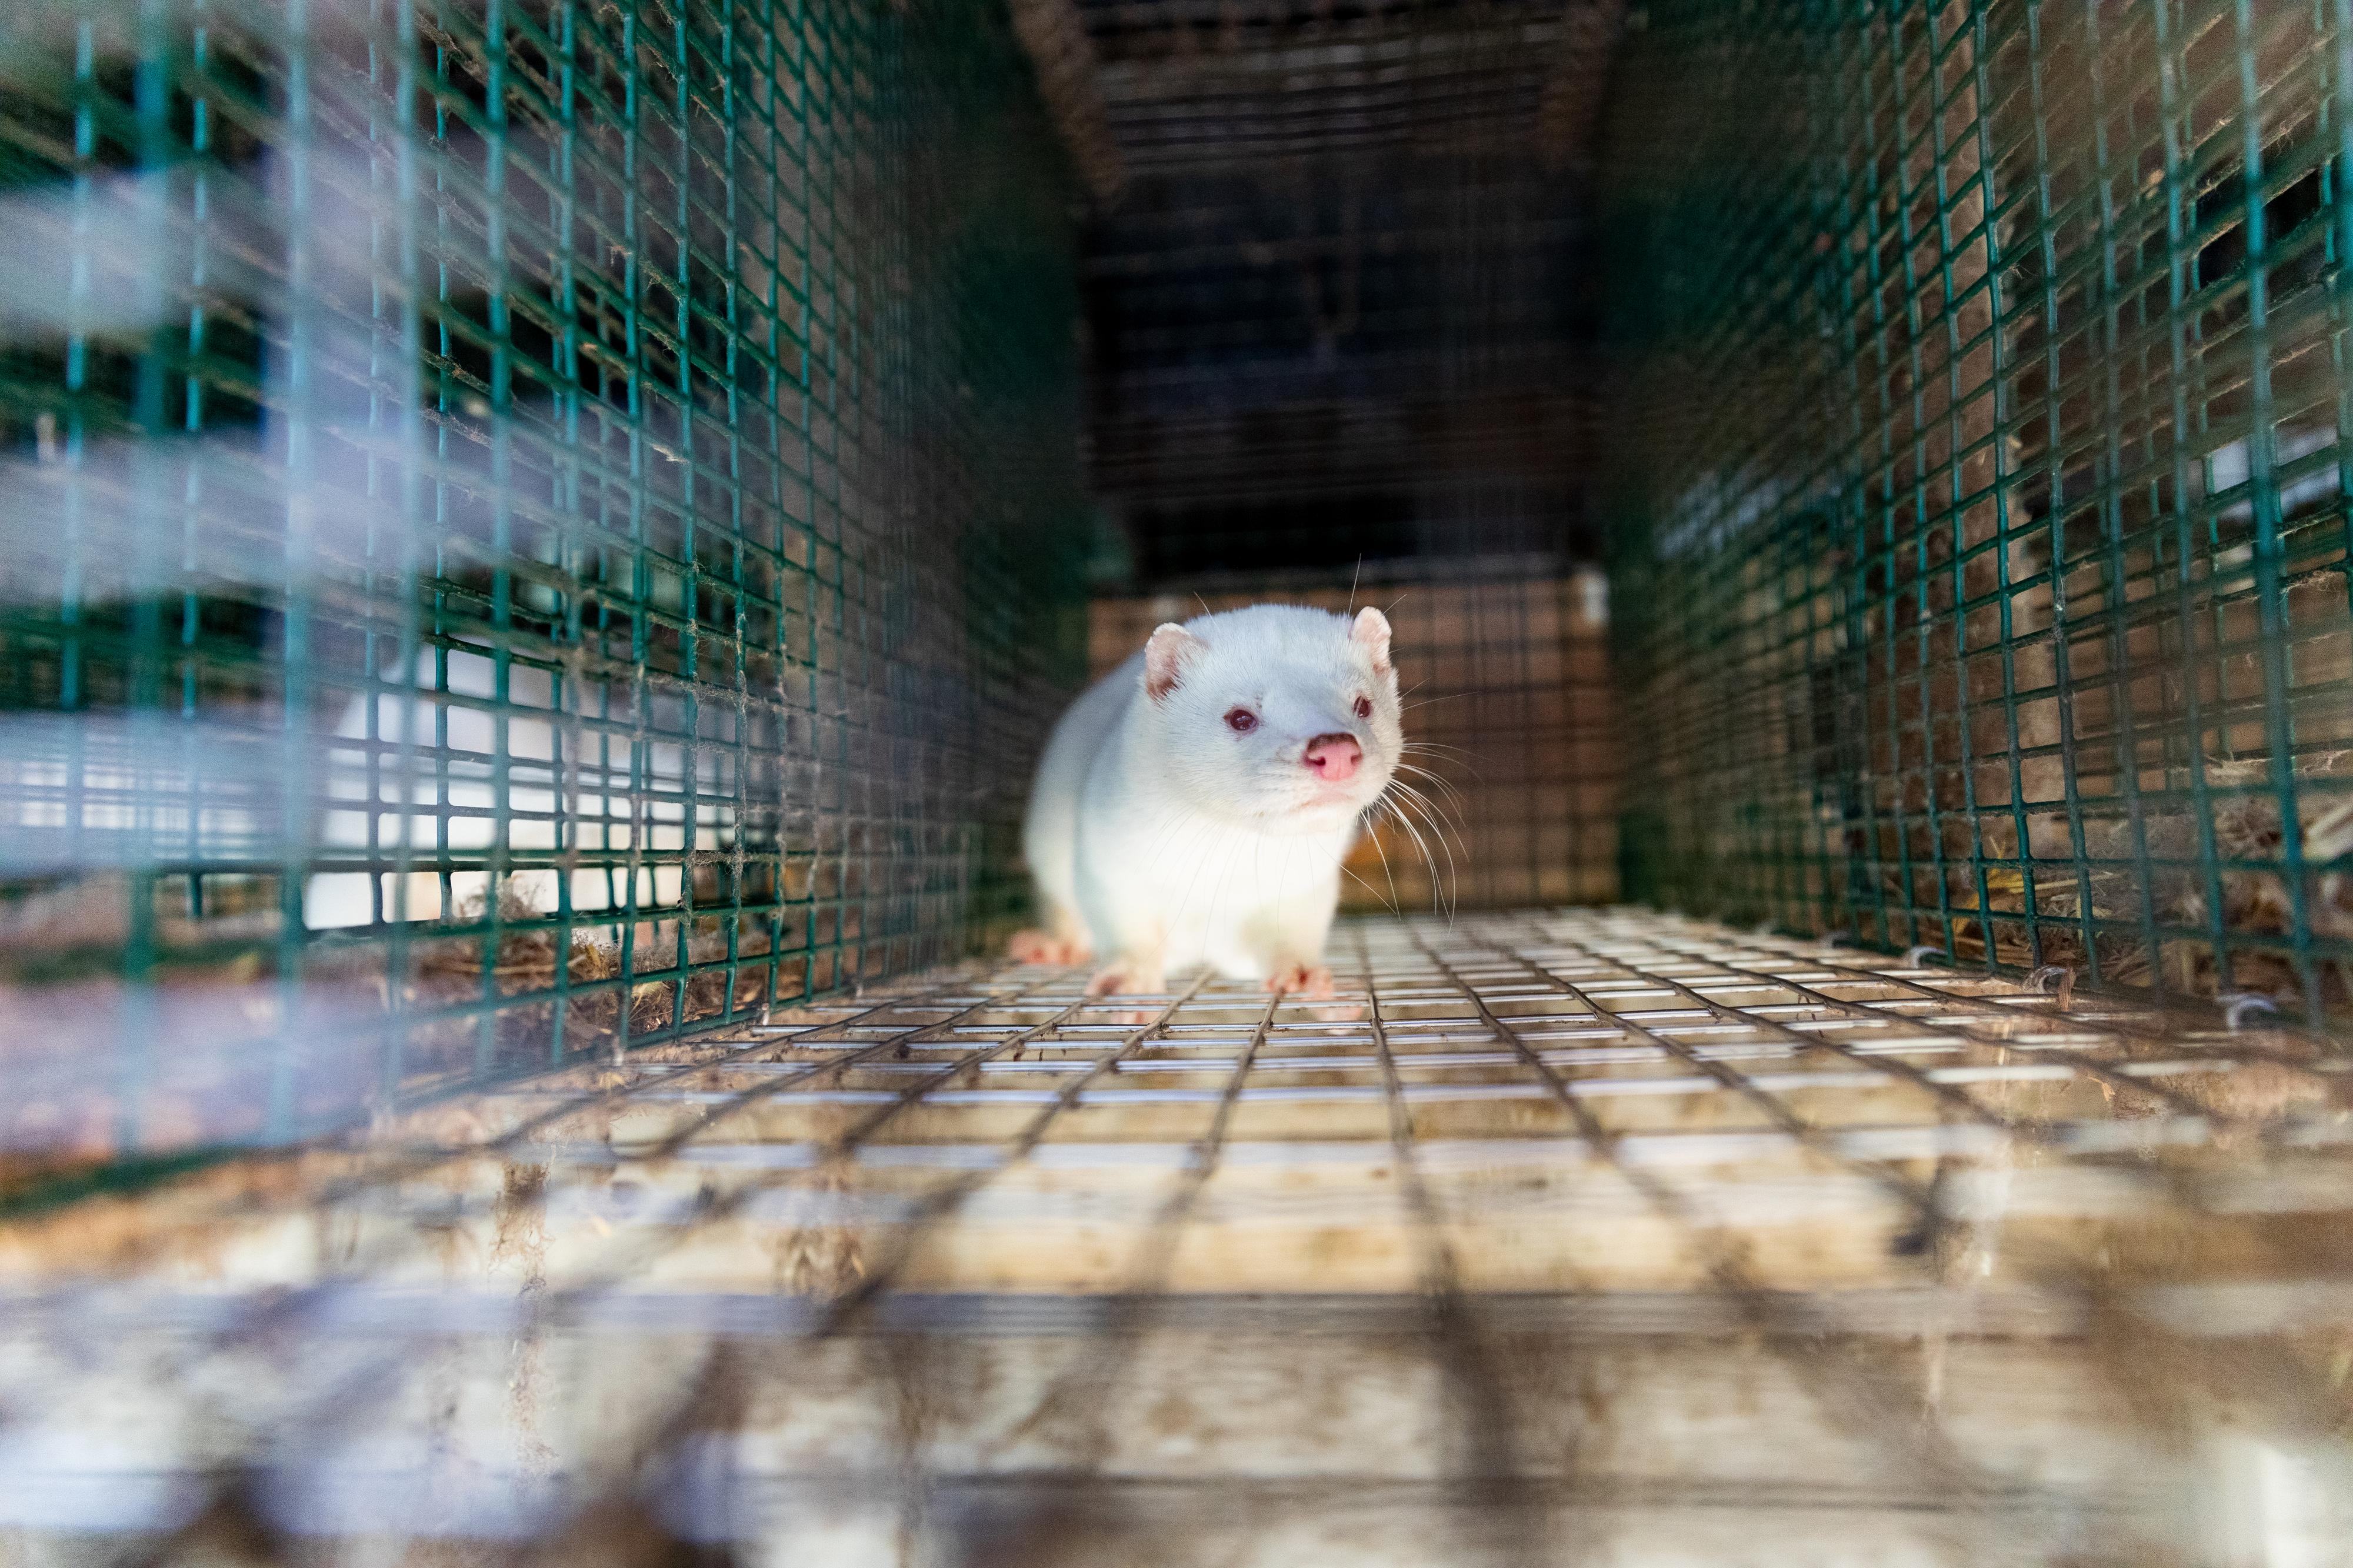 Mink in cage